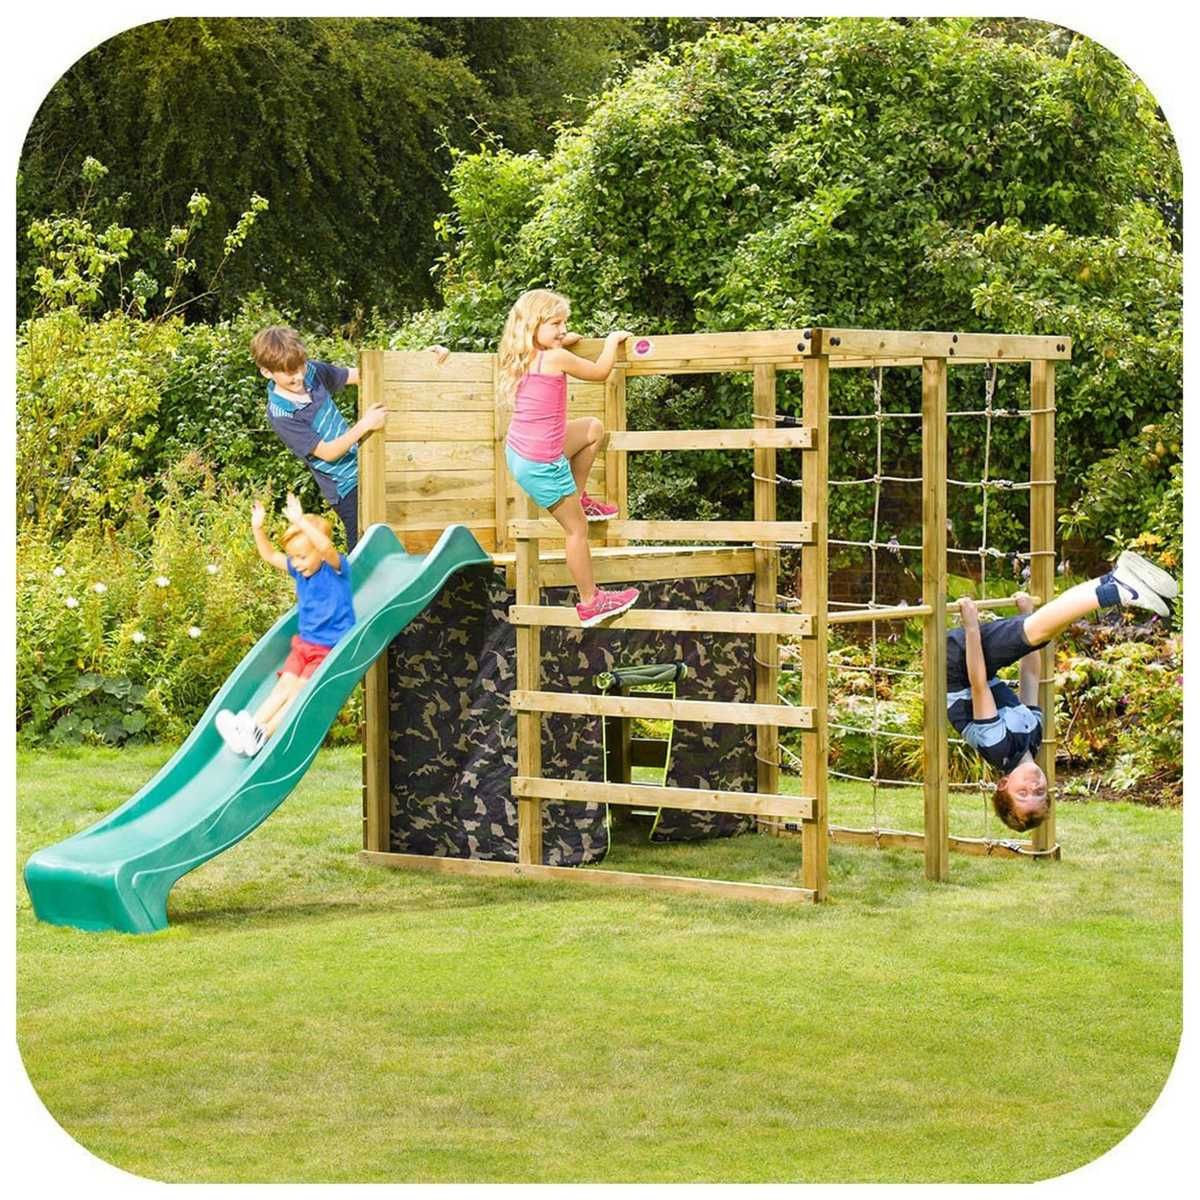 Image Result For Play Cube Playground Kids Outdoor